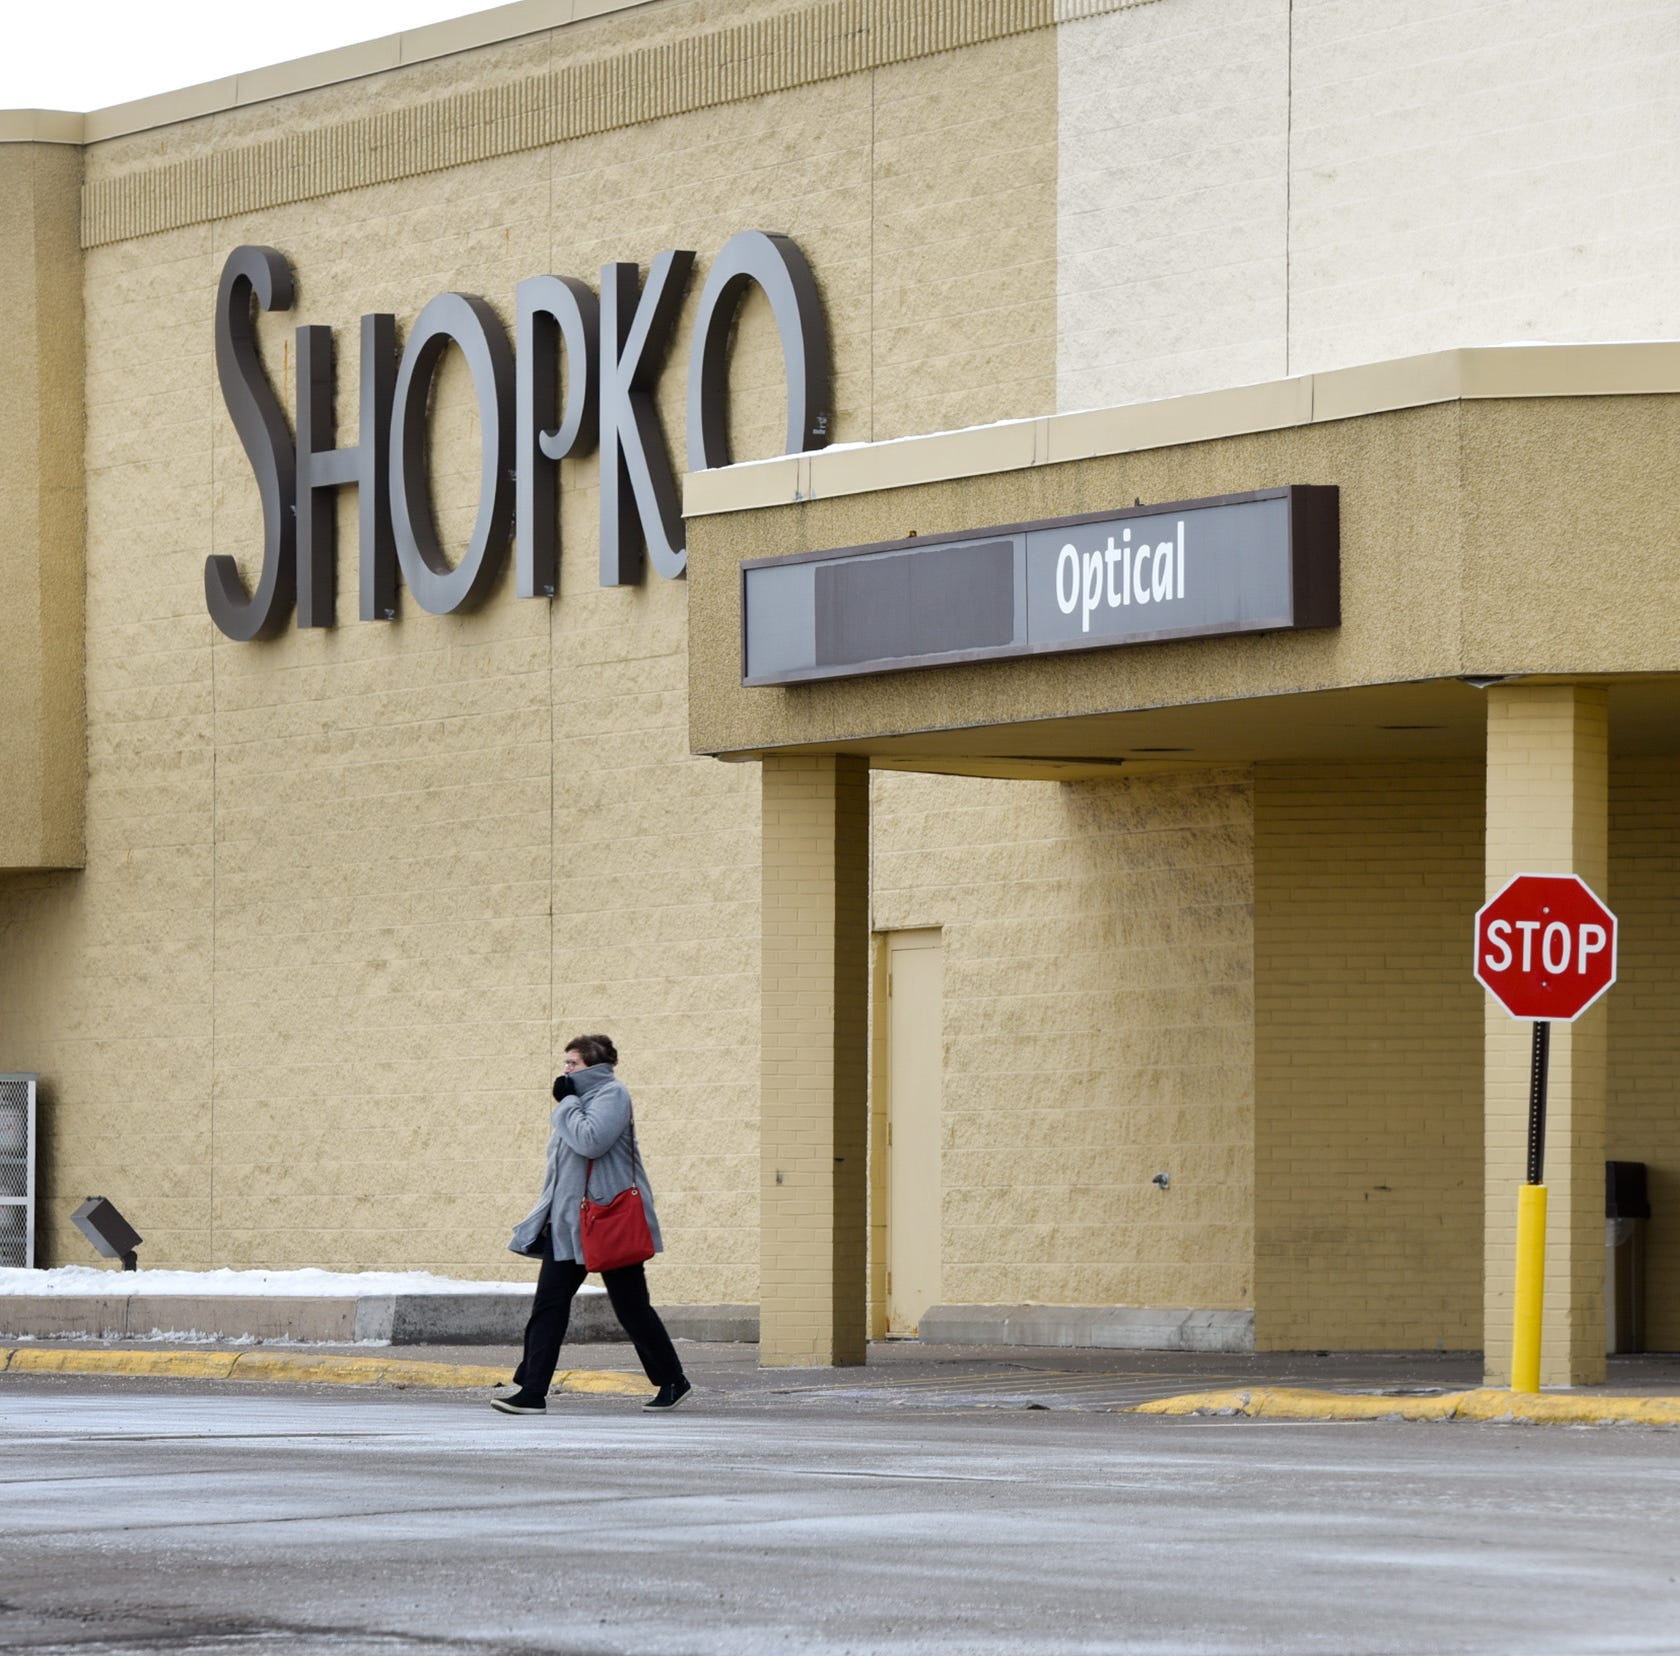 Shopko East Pharmacy closes amid reports retailer may file for bankruptcy